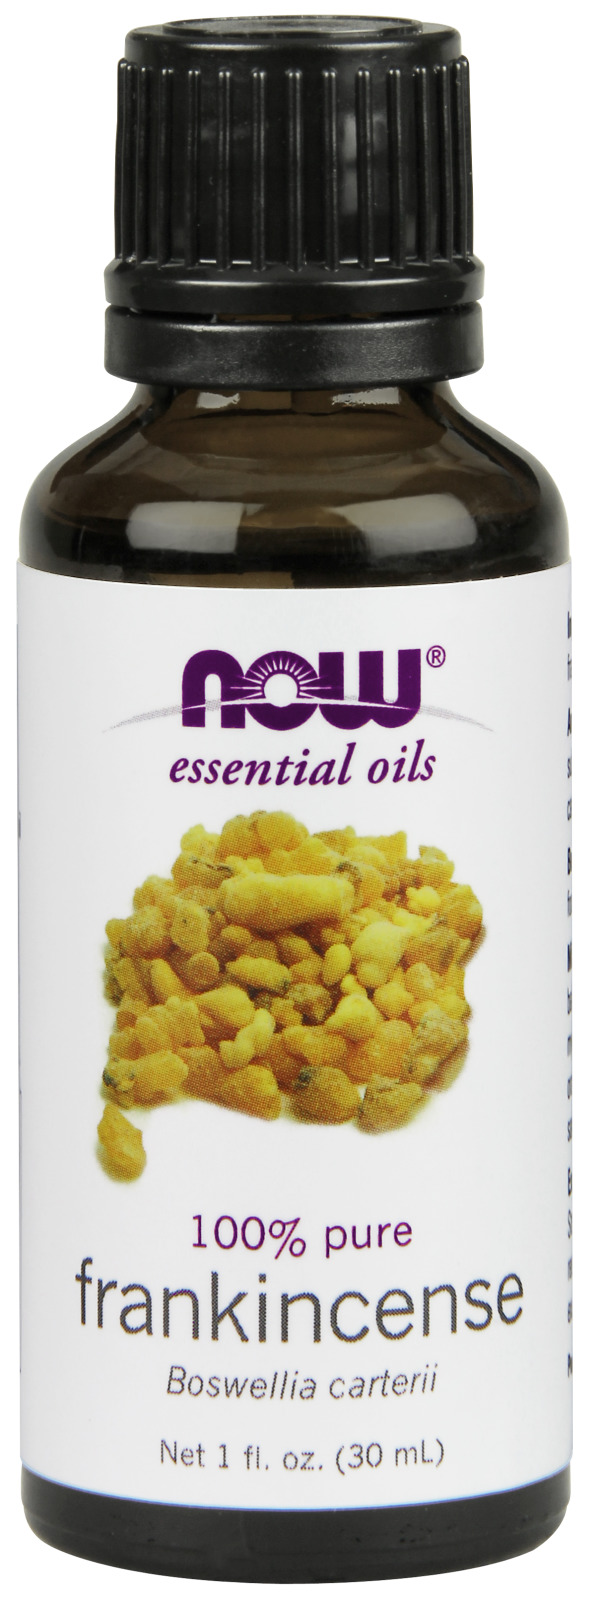 Frankincense Oil 1 fl oz (30 ml) by NOW